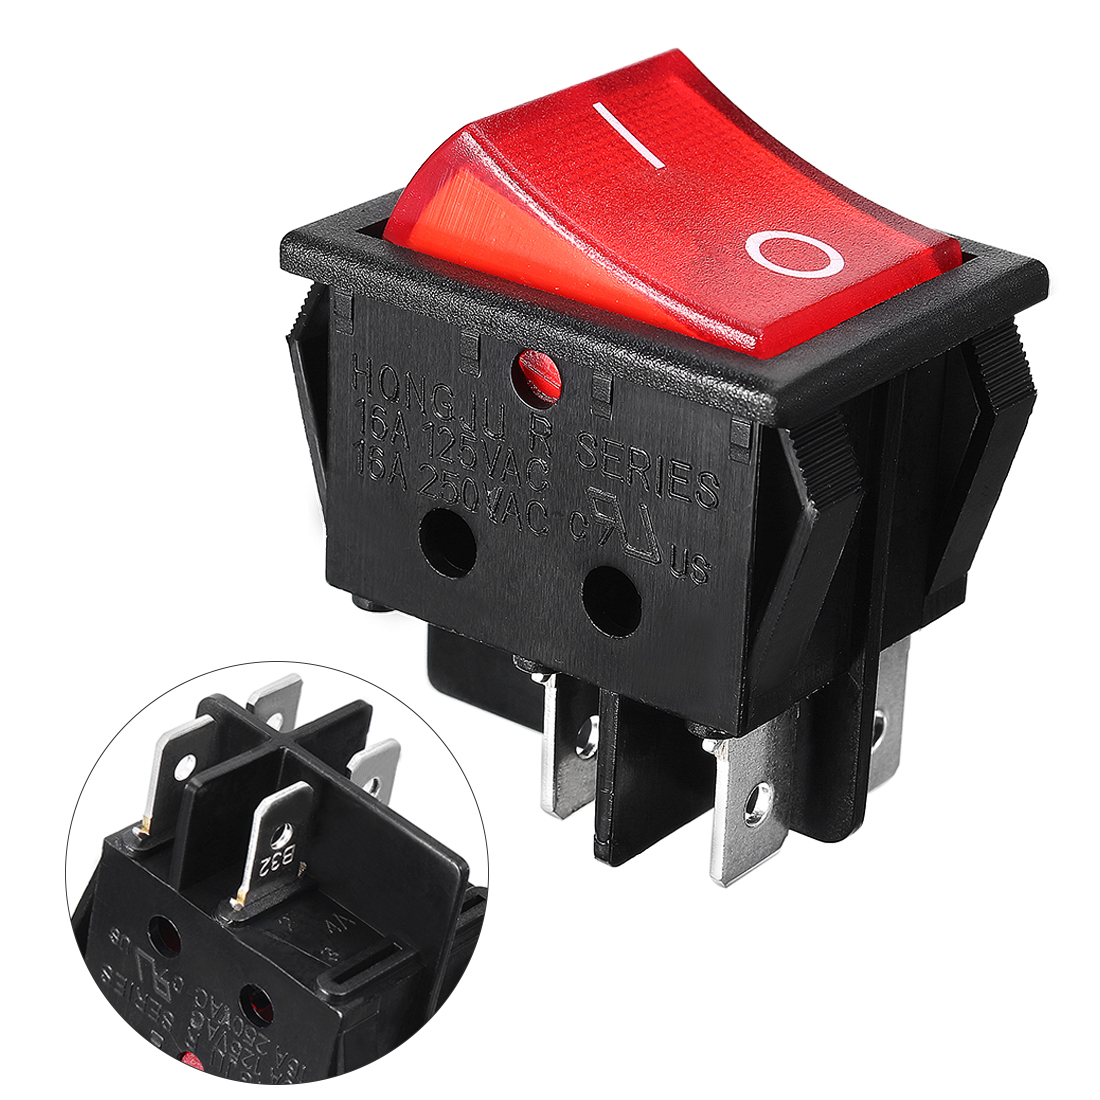 AC 16A/250V Lamp Volt Red Button DPST 4p Soldering Boat Rocker Switch